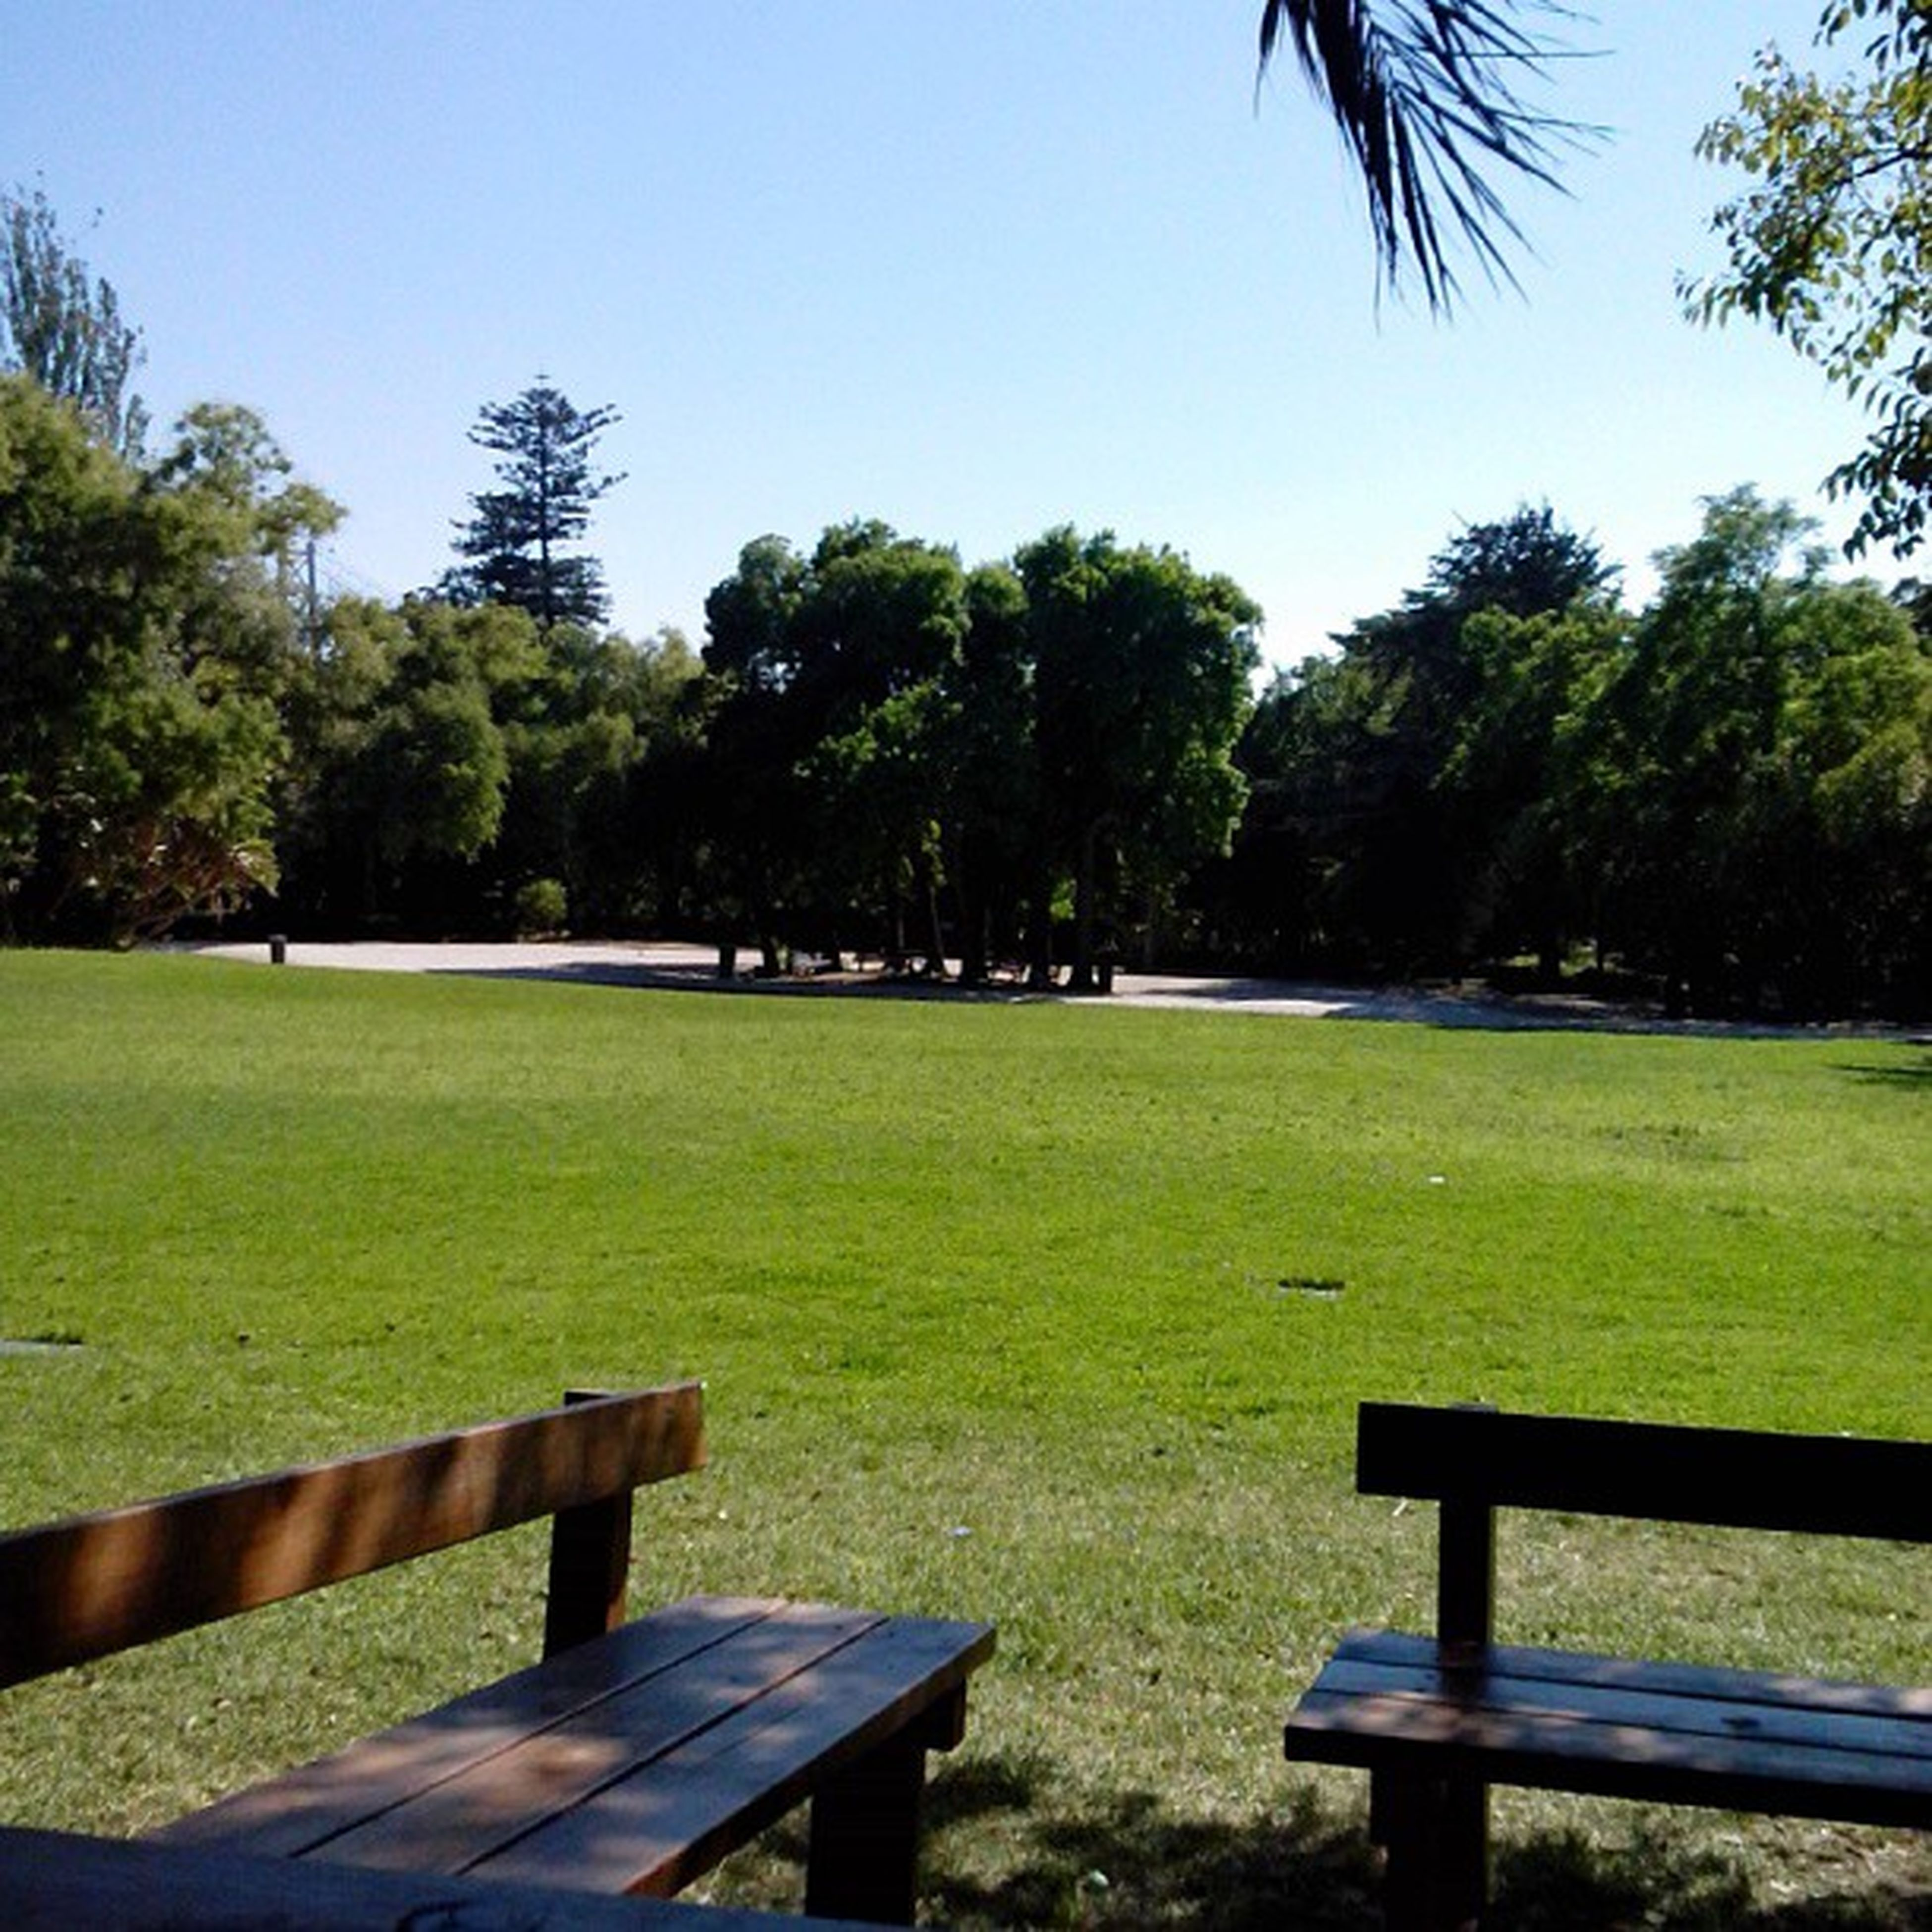 tree, grass, green color, tranquility, tranquil scene, bench, park - man made space, growth, nature, scenics, beauty in nature, landscape, field, clear sky, absence, shadow, lawn, grassy, sunlight, park bench